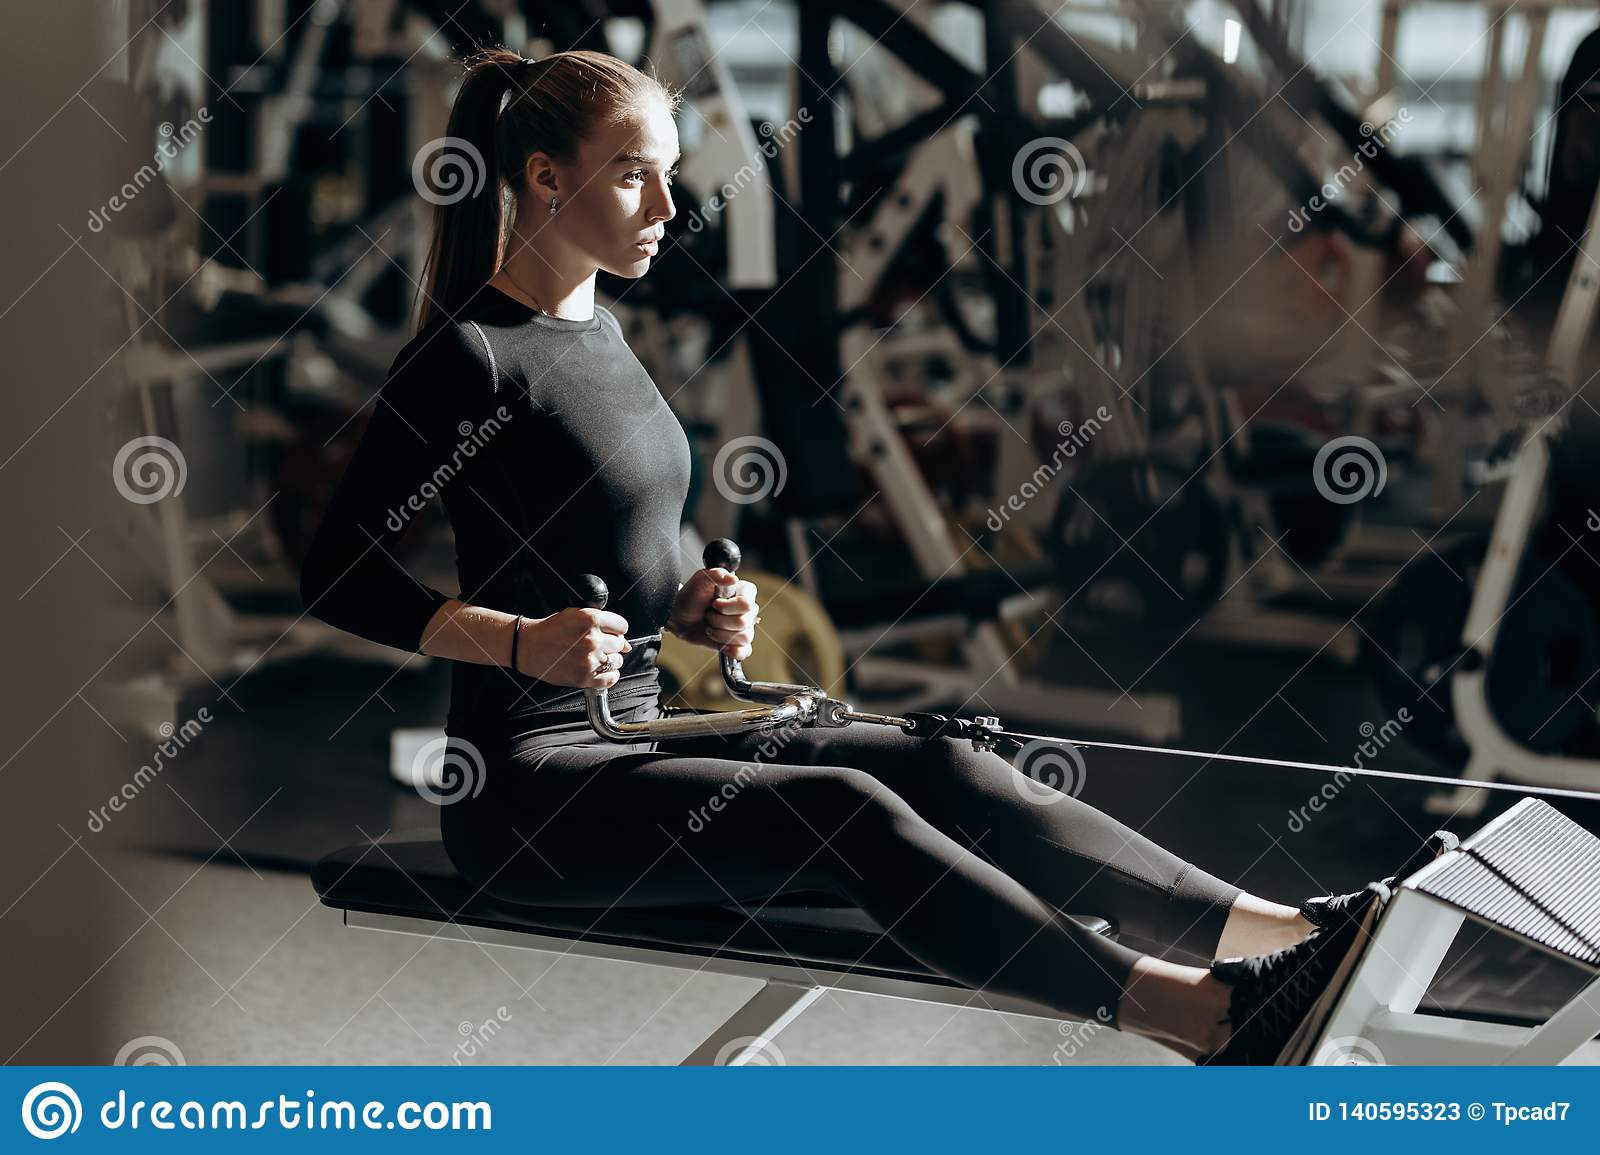 The beautiful athletic girl dressed dressed in a black sportswear is doing sport exercises with equipment on the bench